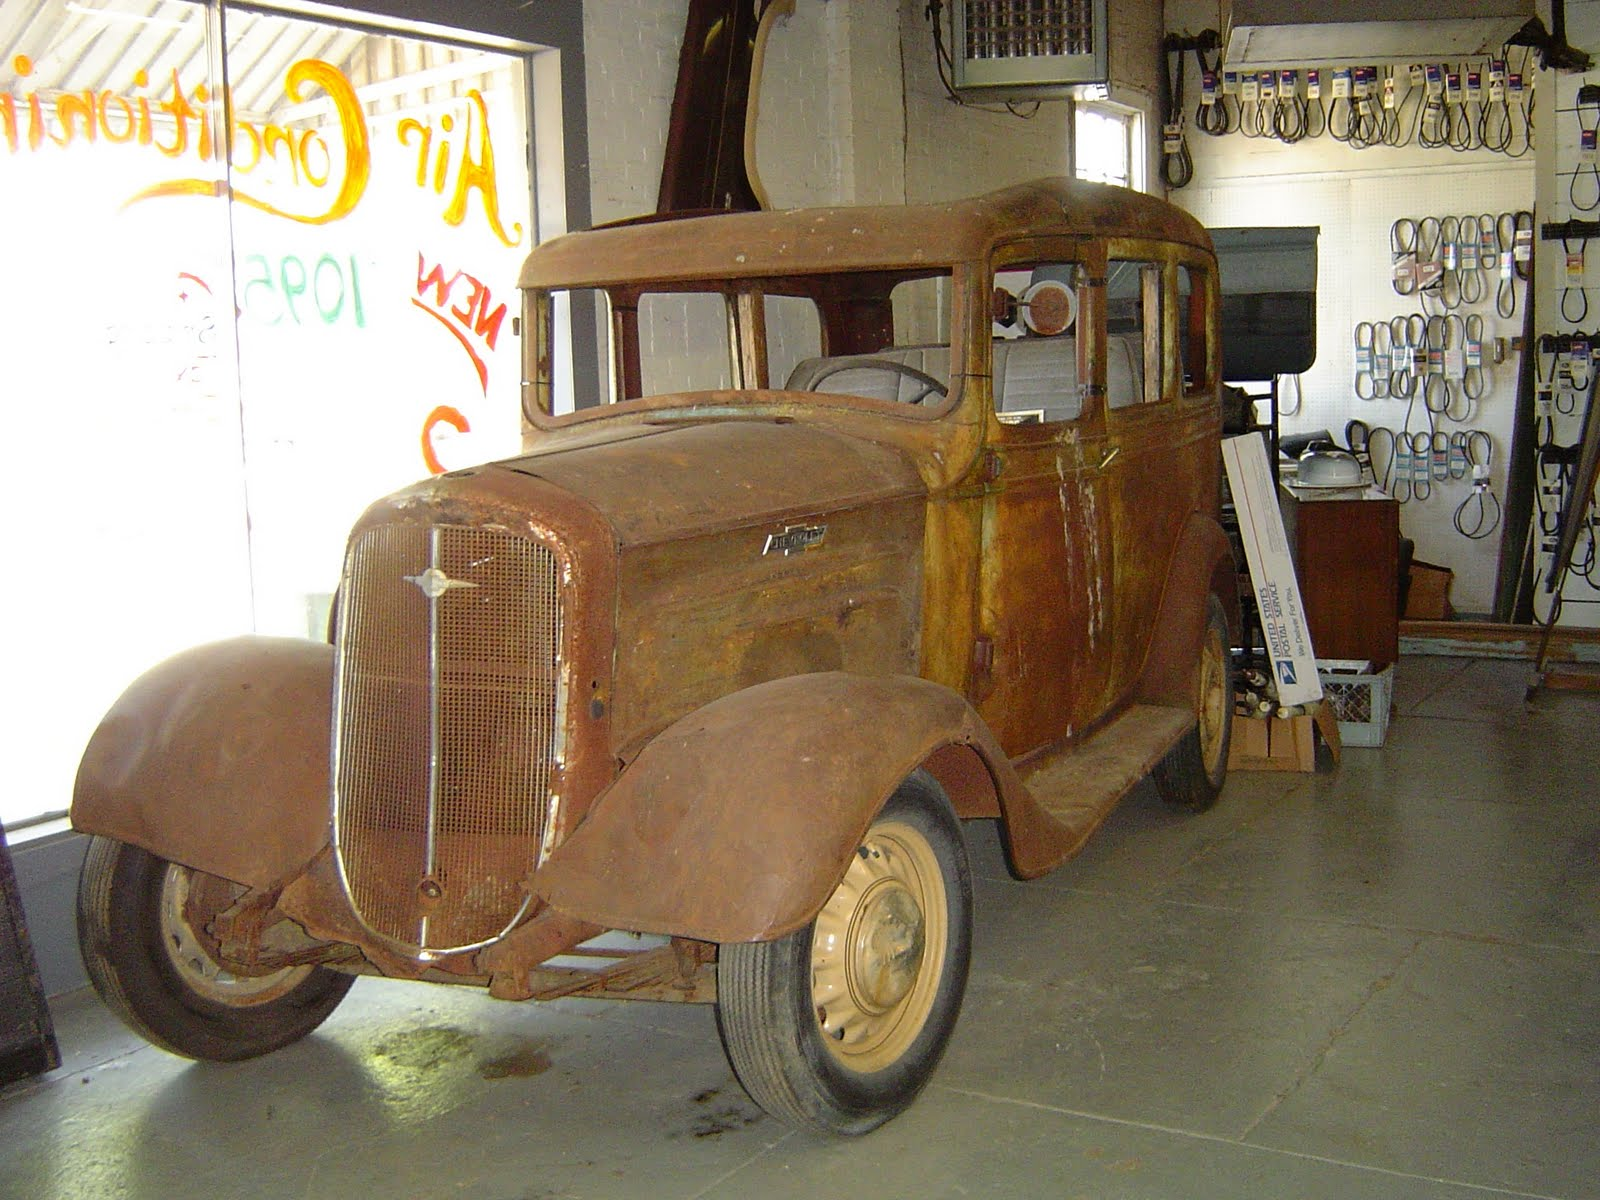 The 1936 Suburban sits on our